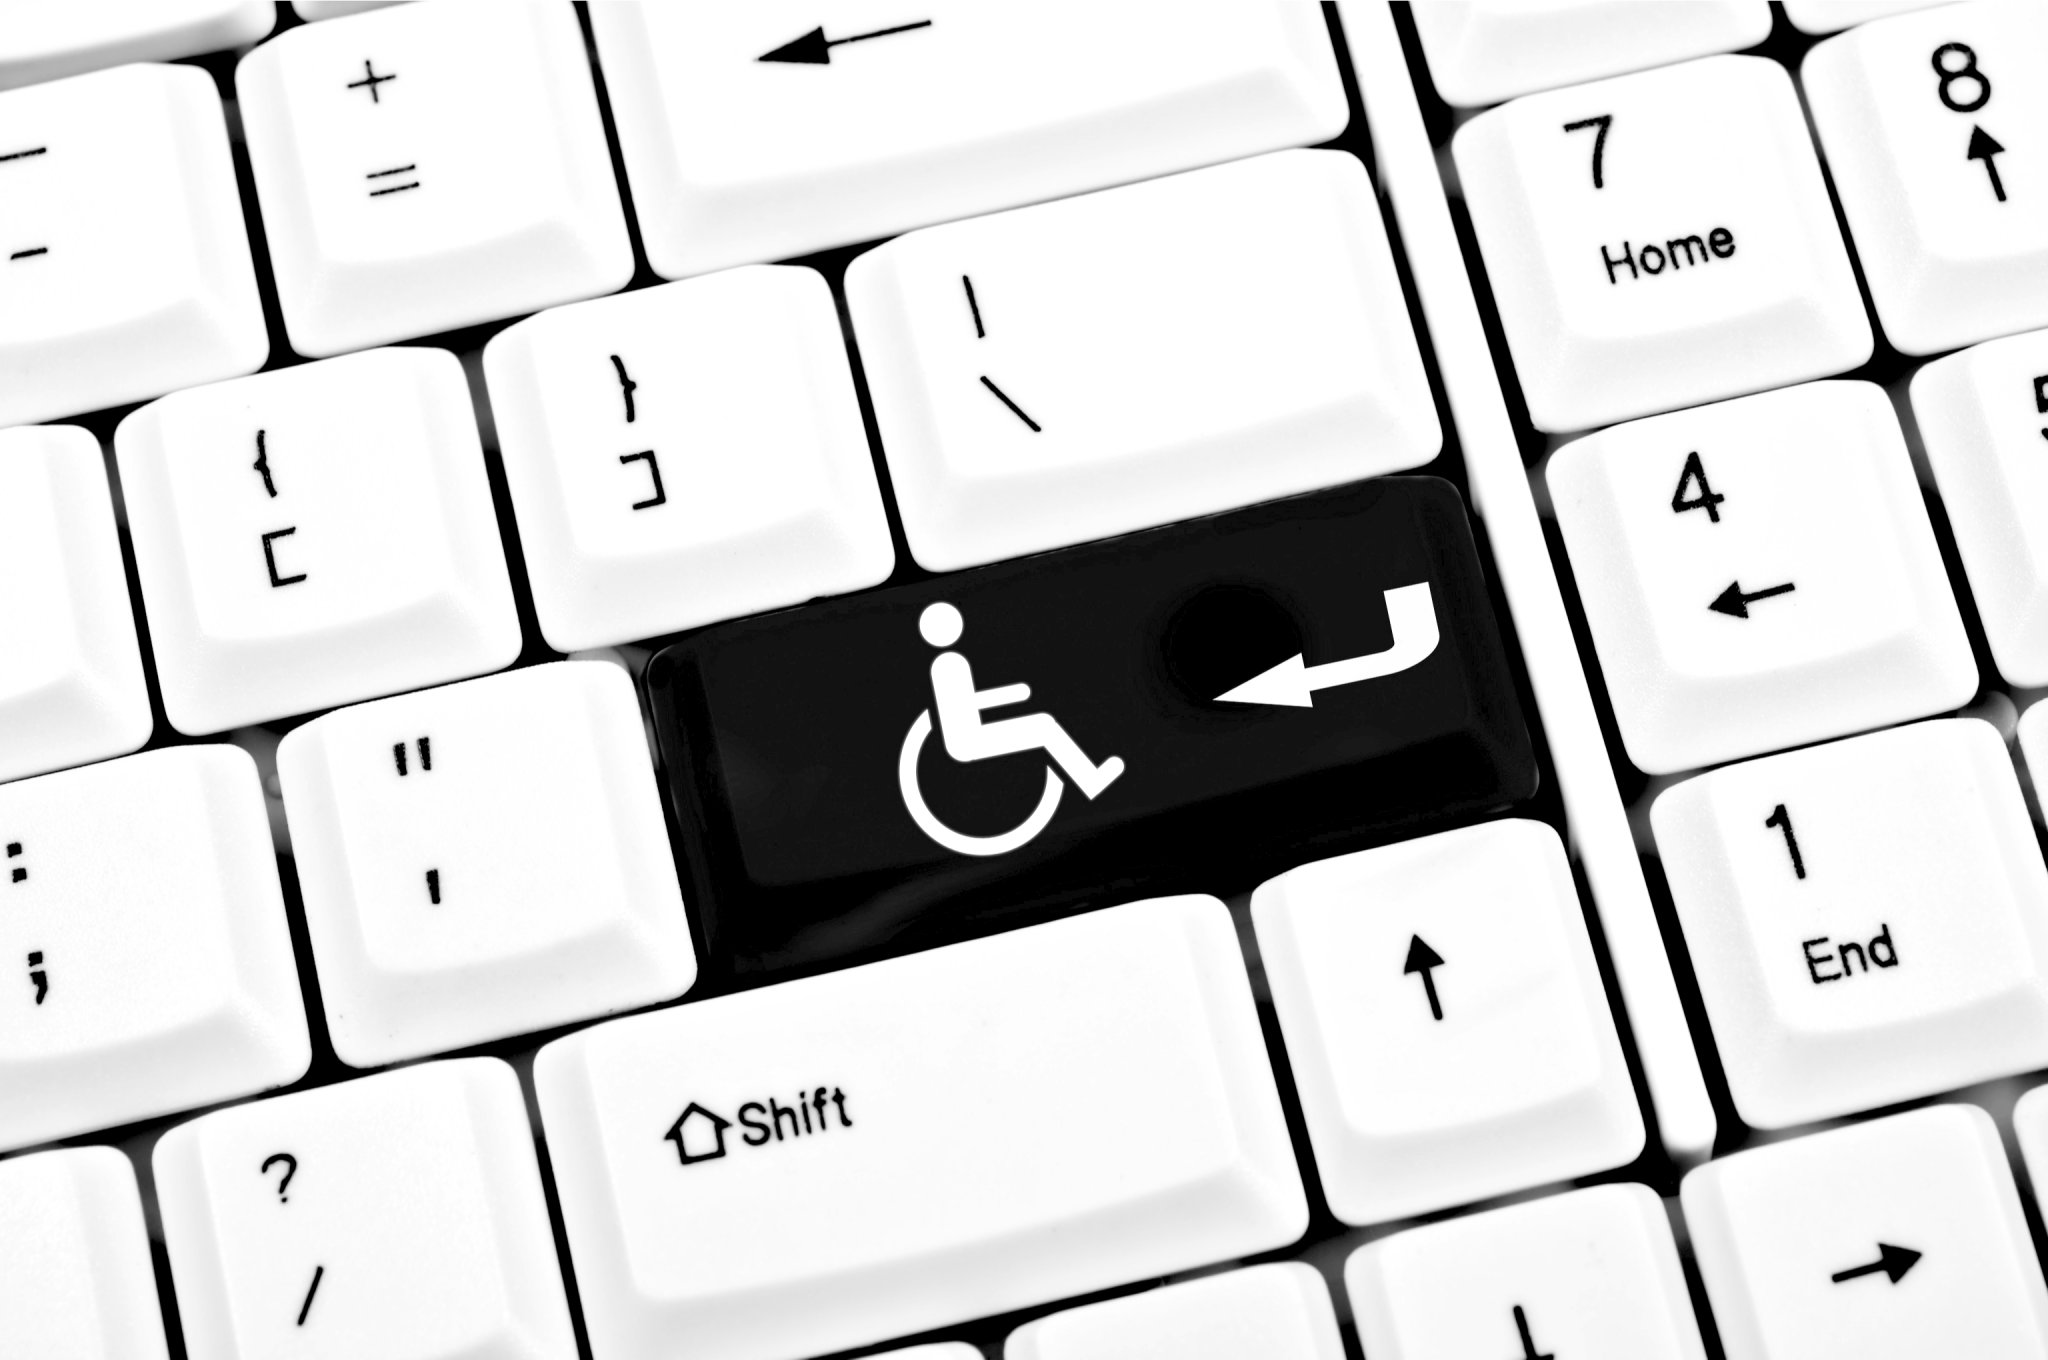 keyboard with handicap sign for return key